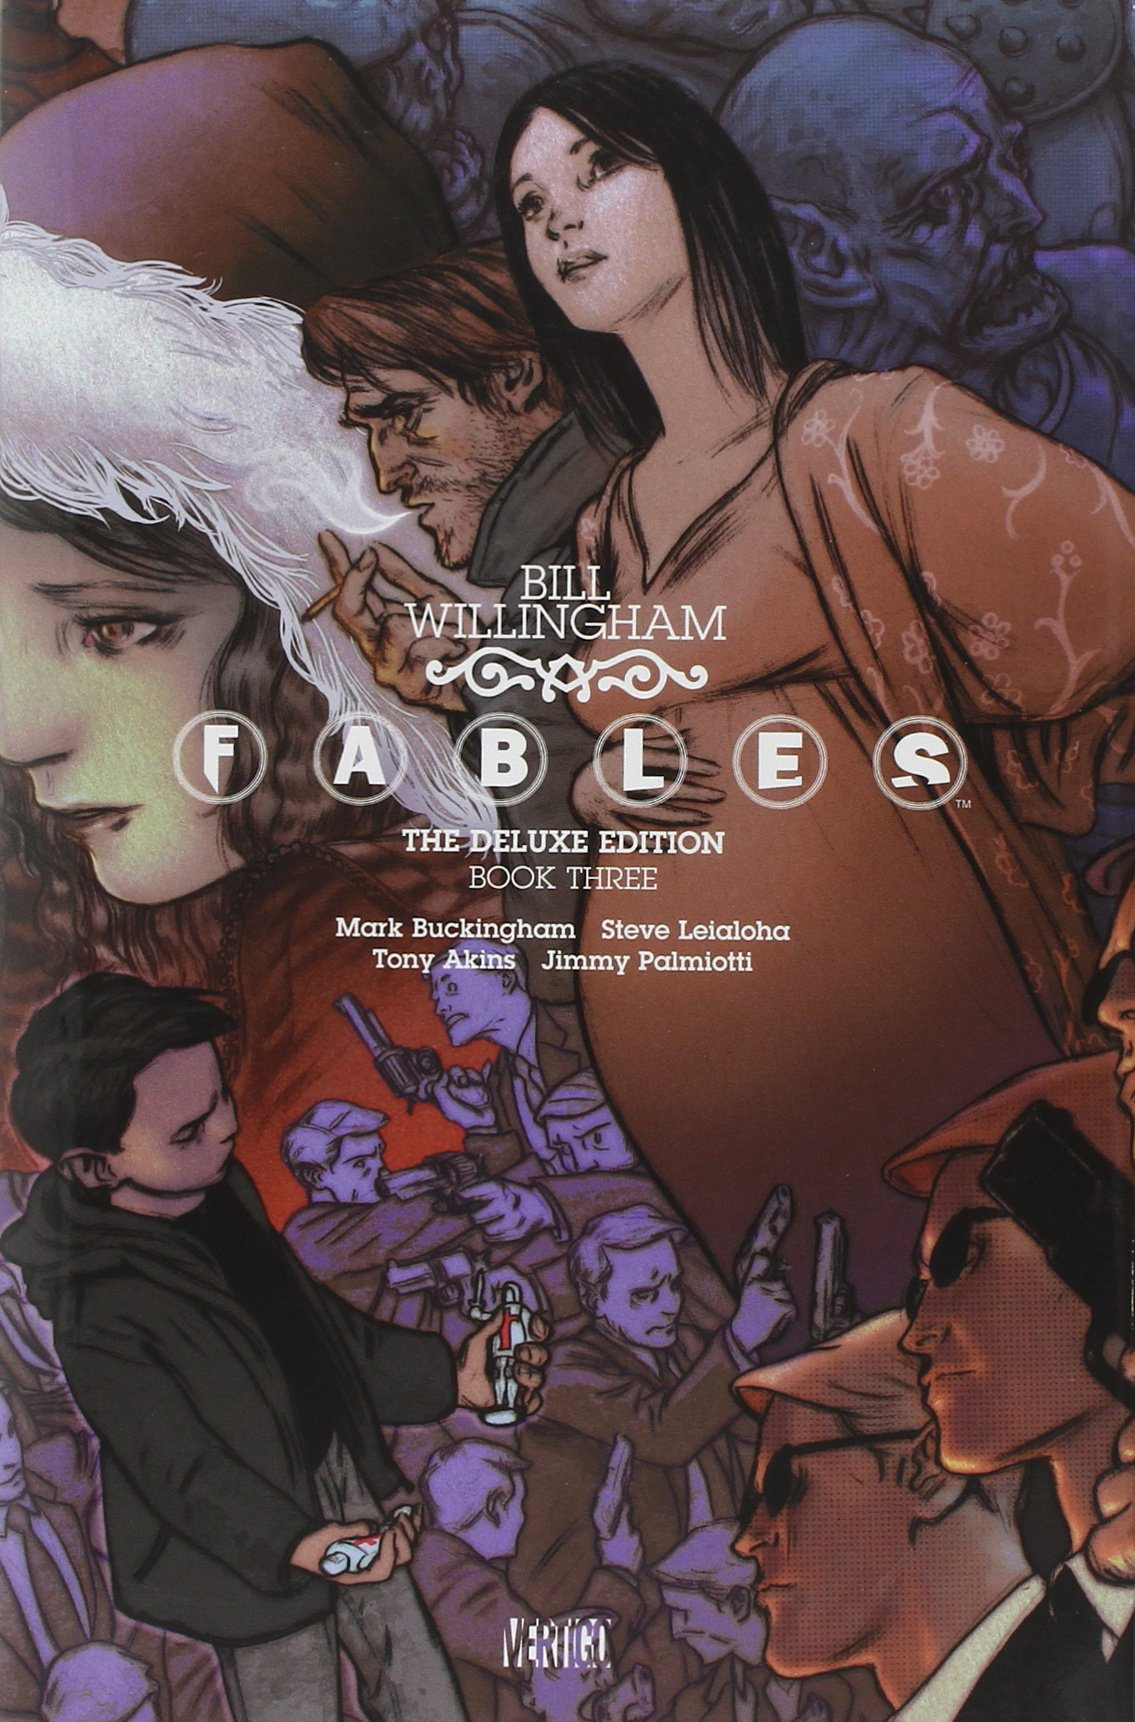 Fables 3 - Book three